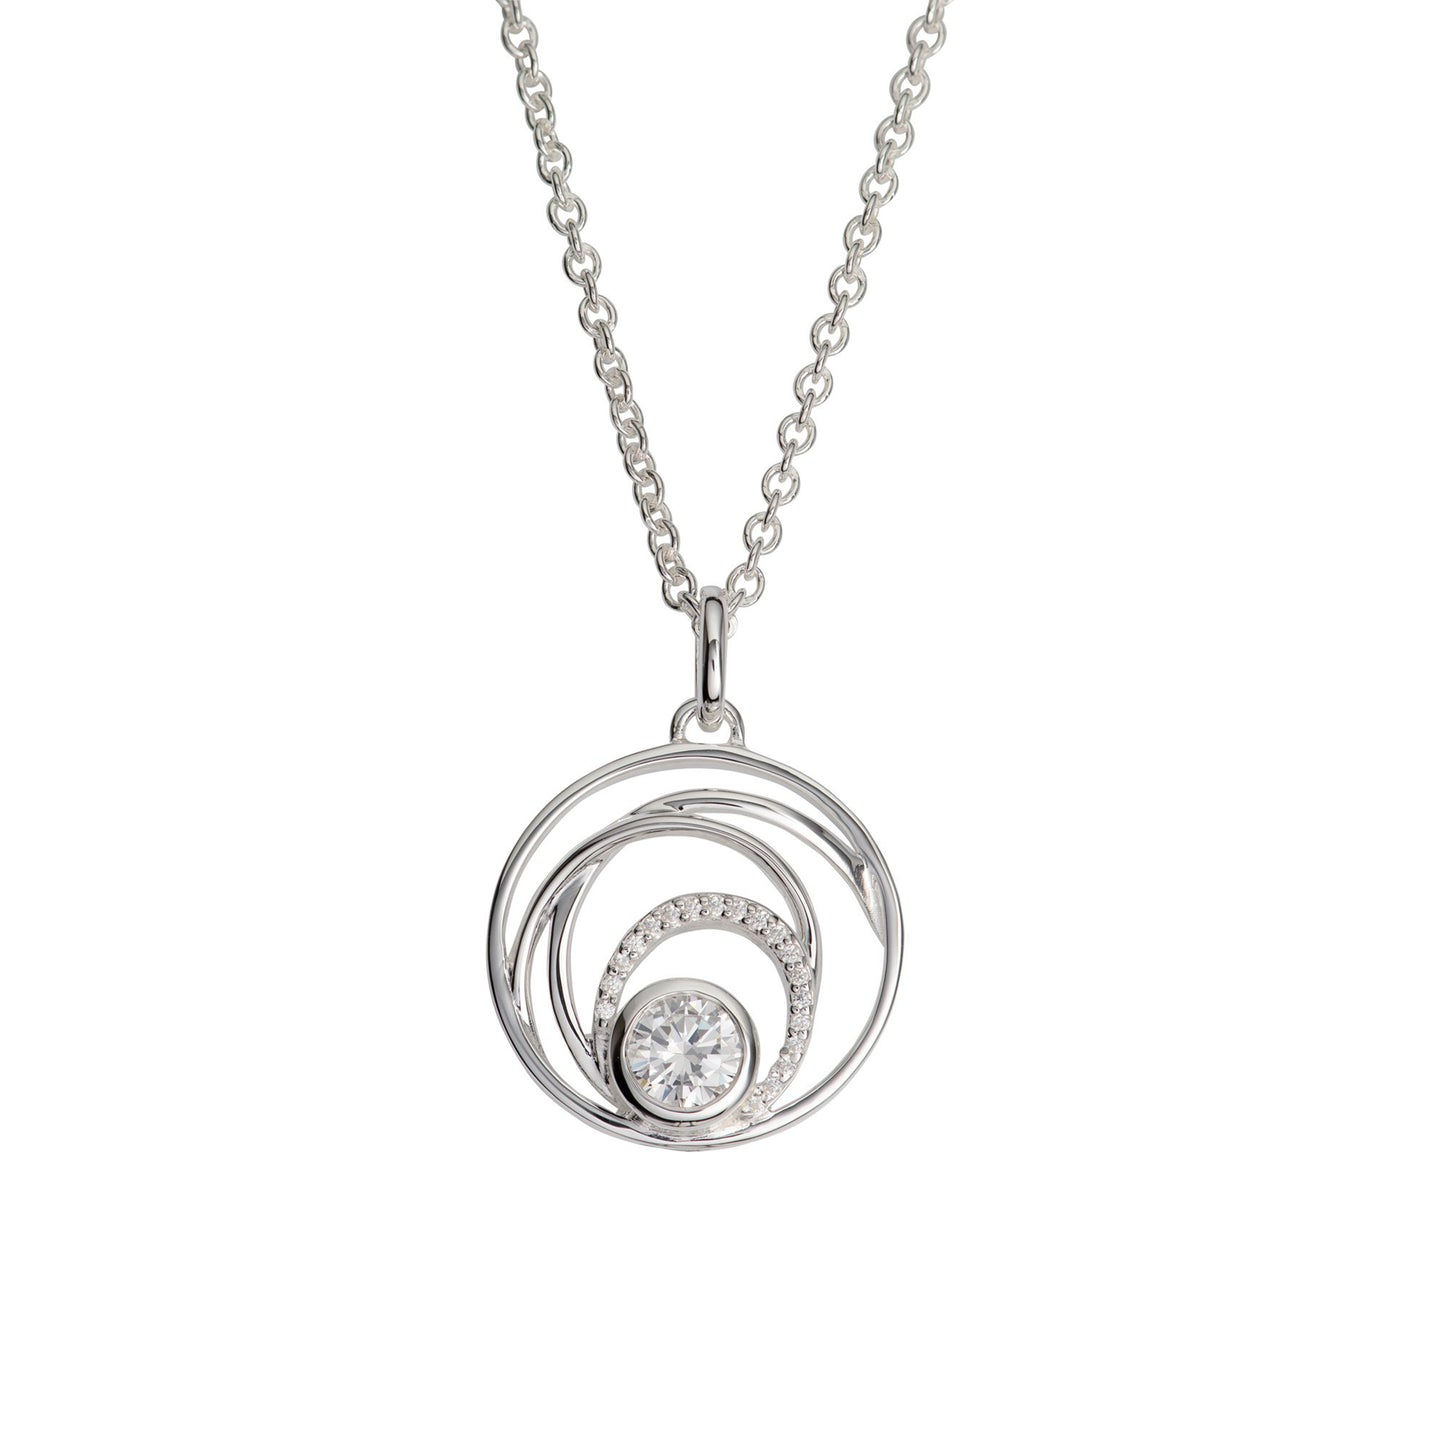 Silver Swirl Pendant with Cubic Zirconia with Chain MK-765